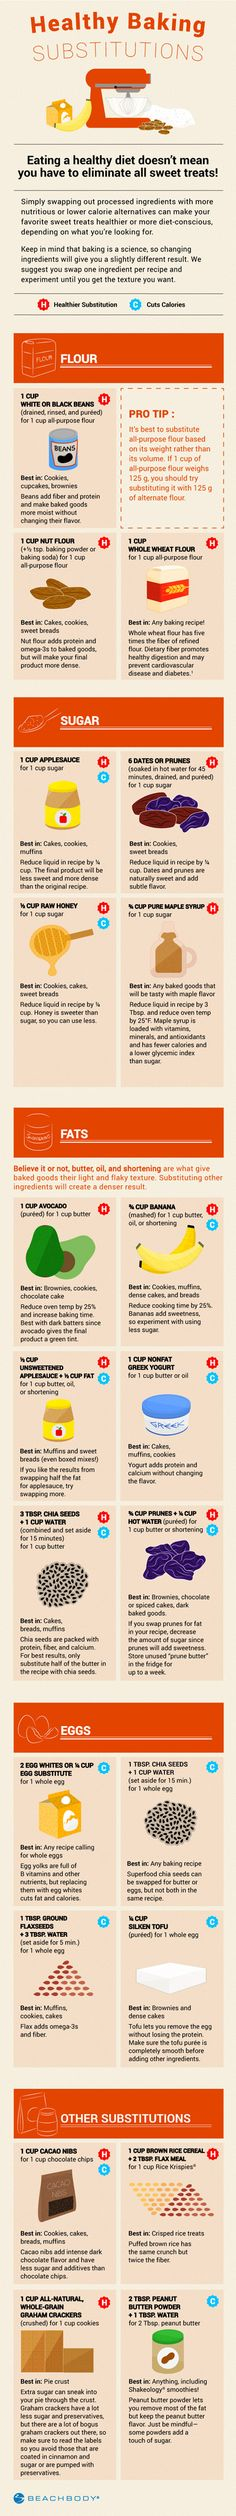 Healthy Baking Substitutions | Beachbody